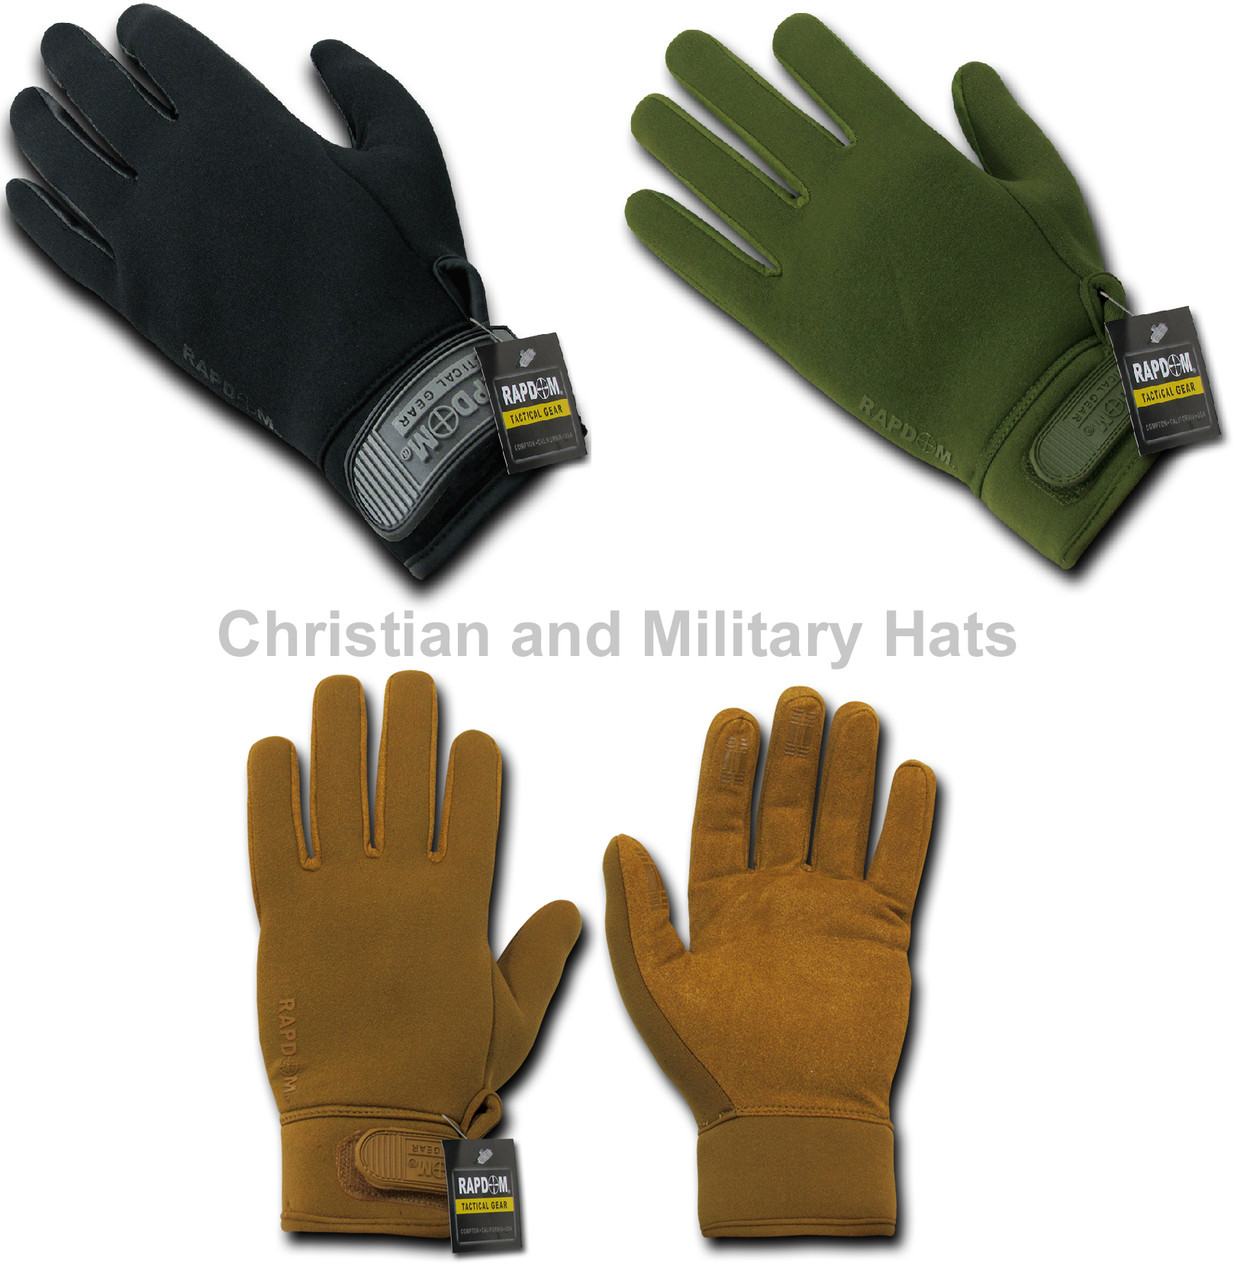 Rapid Dom Neoprene Water Repelent Gloves Tactical Patrol Army Military